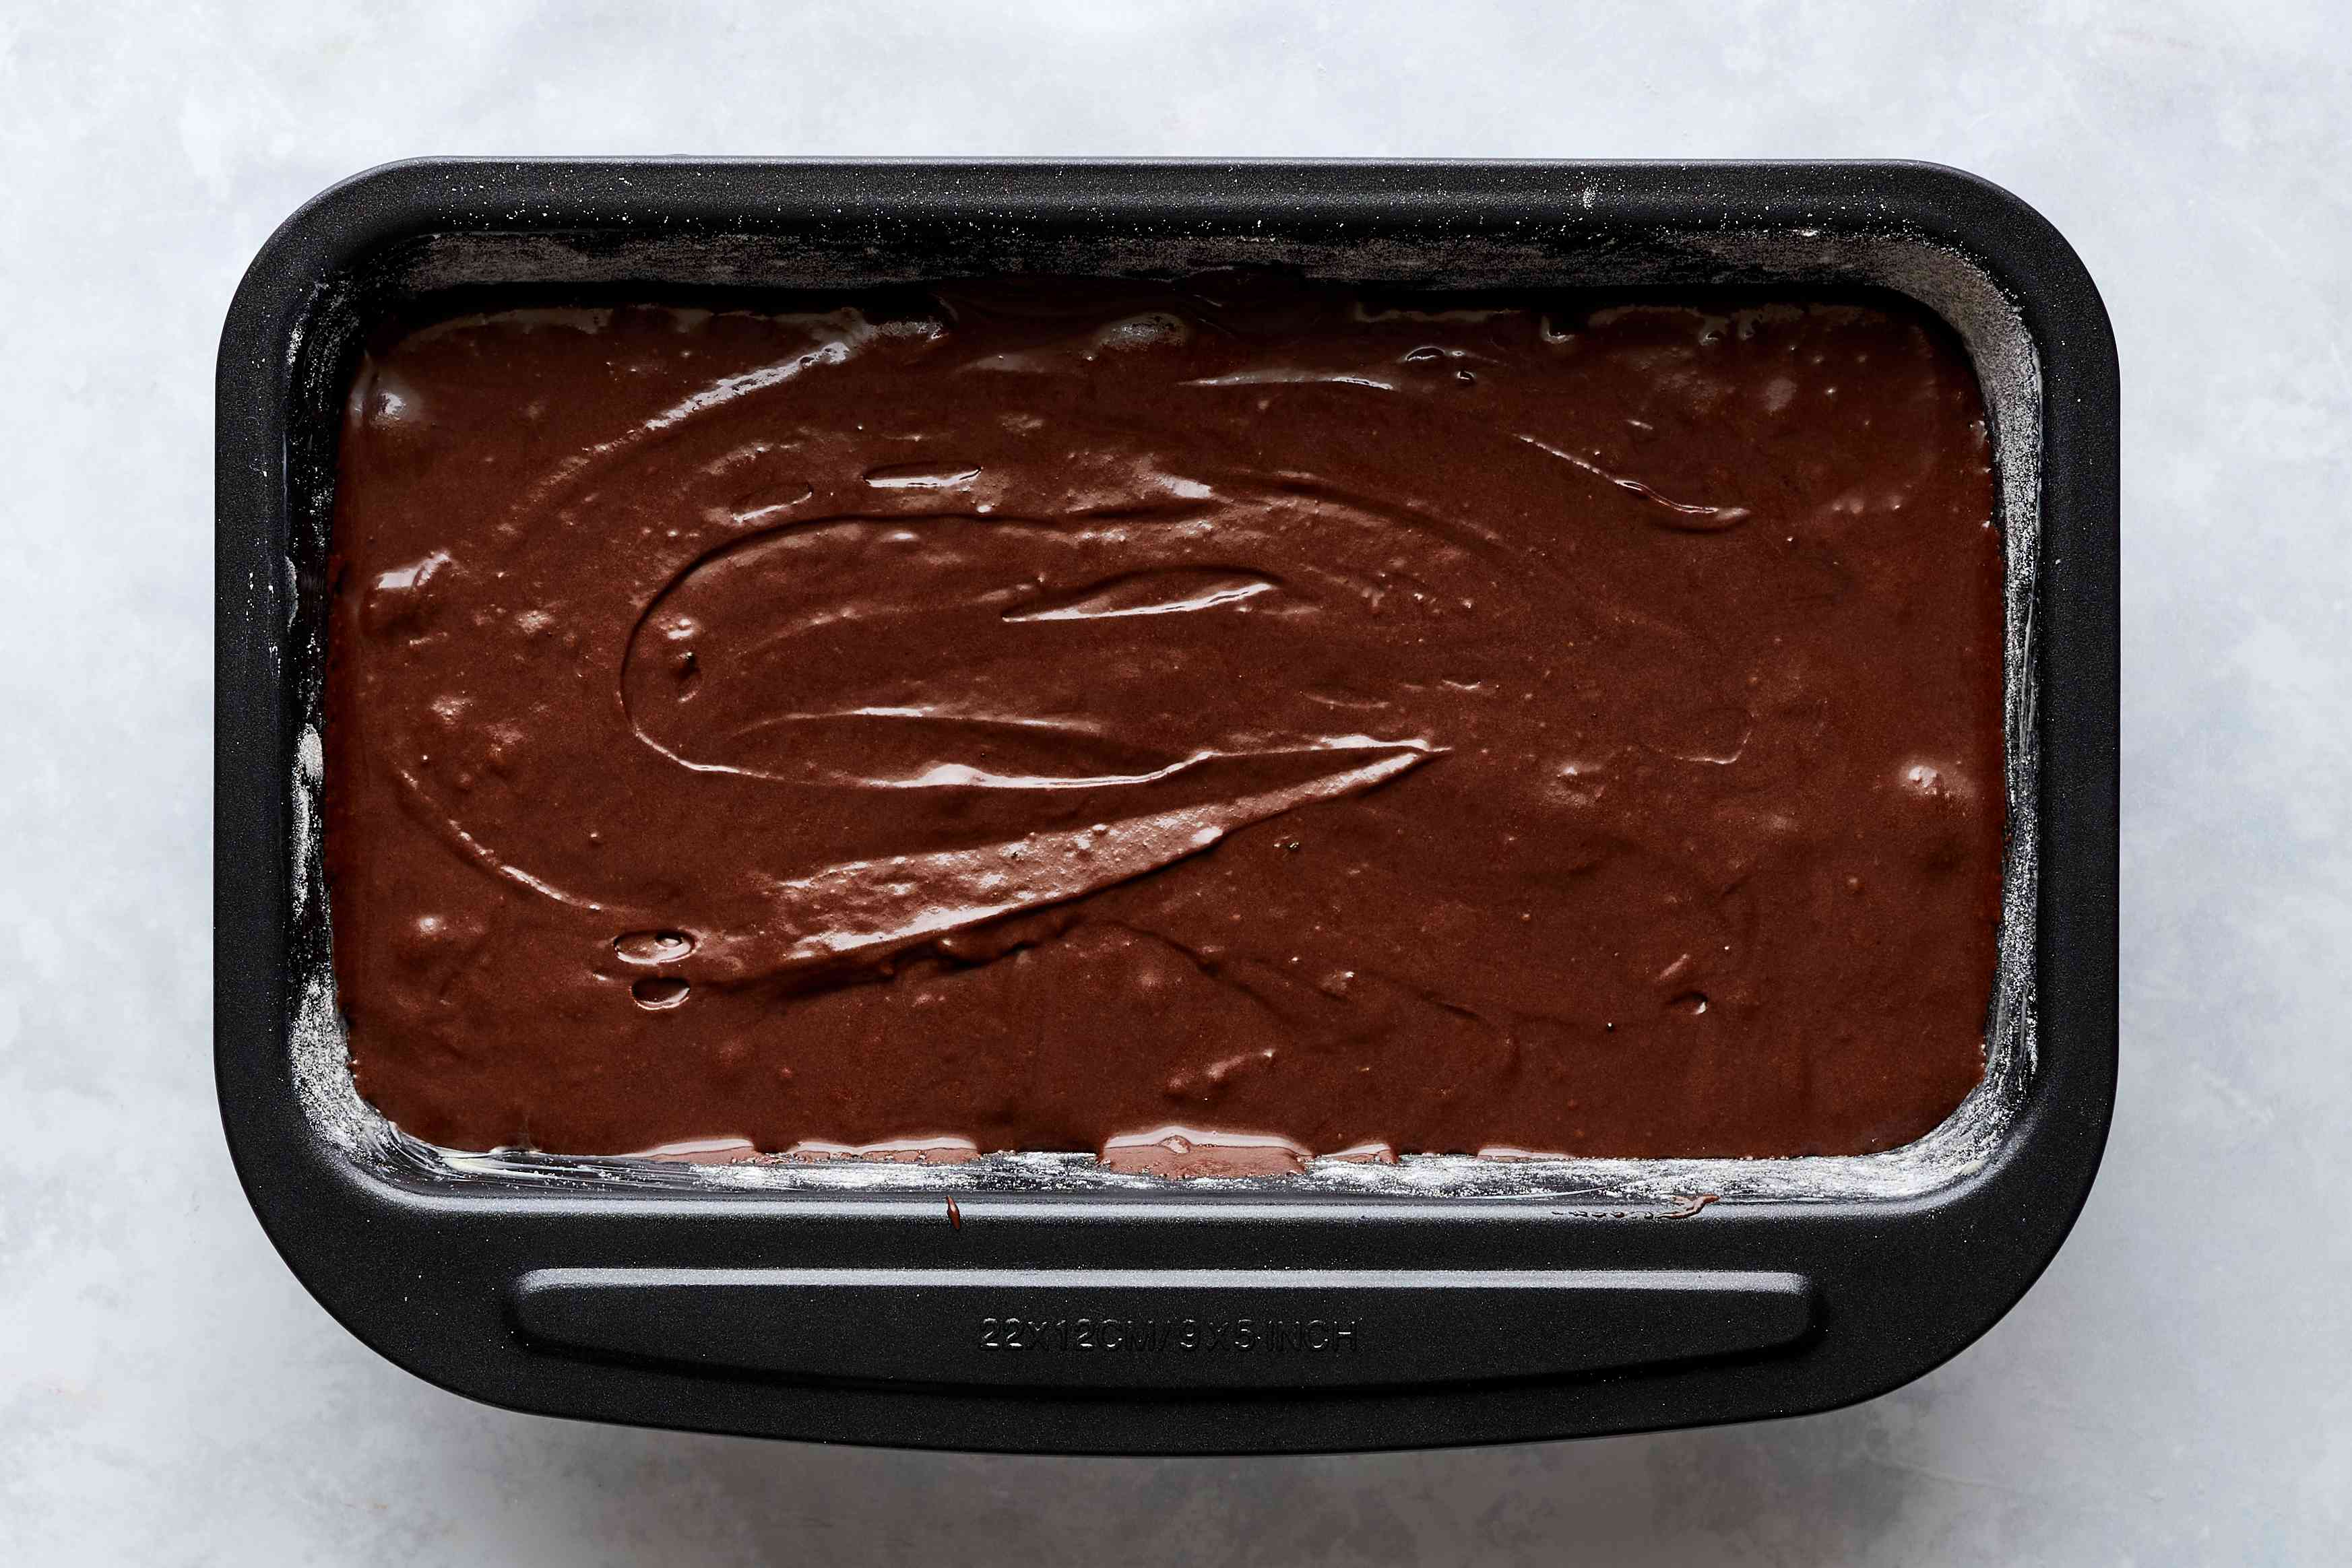 chocolate batter in a greased and floured baking pan